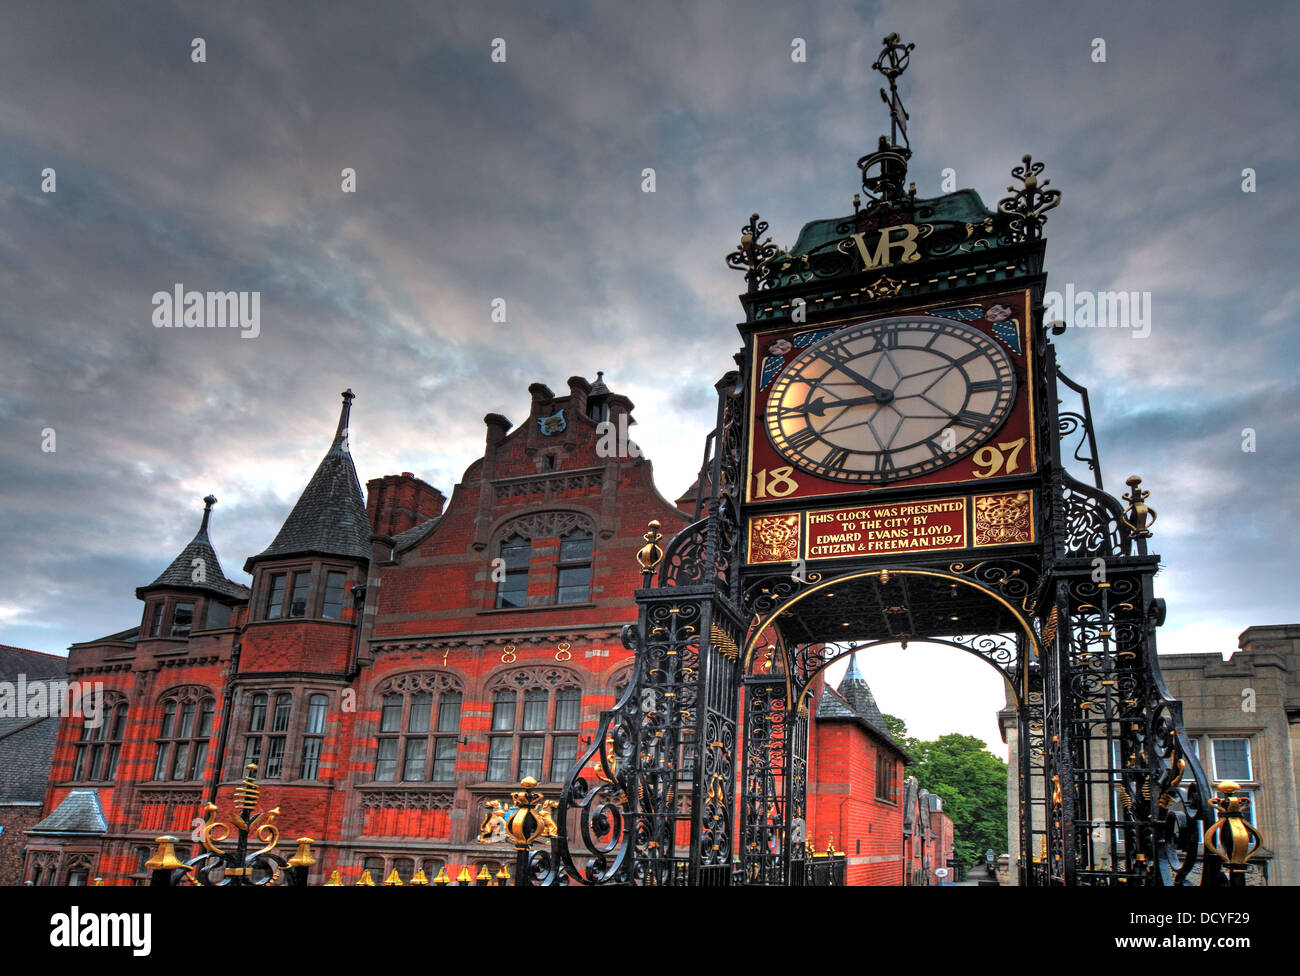 UK England,English,Great,Britain,British,walled,city,VR,1897,bridge,Roman,fortress,of,Deva,Victrix.,prominent,landmark,landmarks,gateway,diamond,jubilee,of,Queen,Victoria,daytime,daylight,sky,dramatic,openwork,iron,pylons,has,a,clock,face,on,all,four,sides,city,listed,by,English,Heritage,grade,I,gotonysmith,travel,tourist,tourism,CWAC,West,east,local,authority,council,grade1,famous,clocks,history,historic,landmark,landmarks,CH1,1LE,CH11LE,st,street,City Centre,City,Centre,@hotpixUK,Buy Pictures of,Buy Images Of